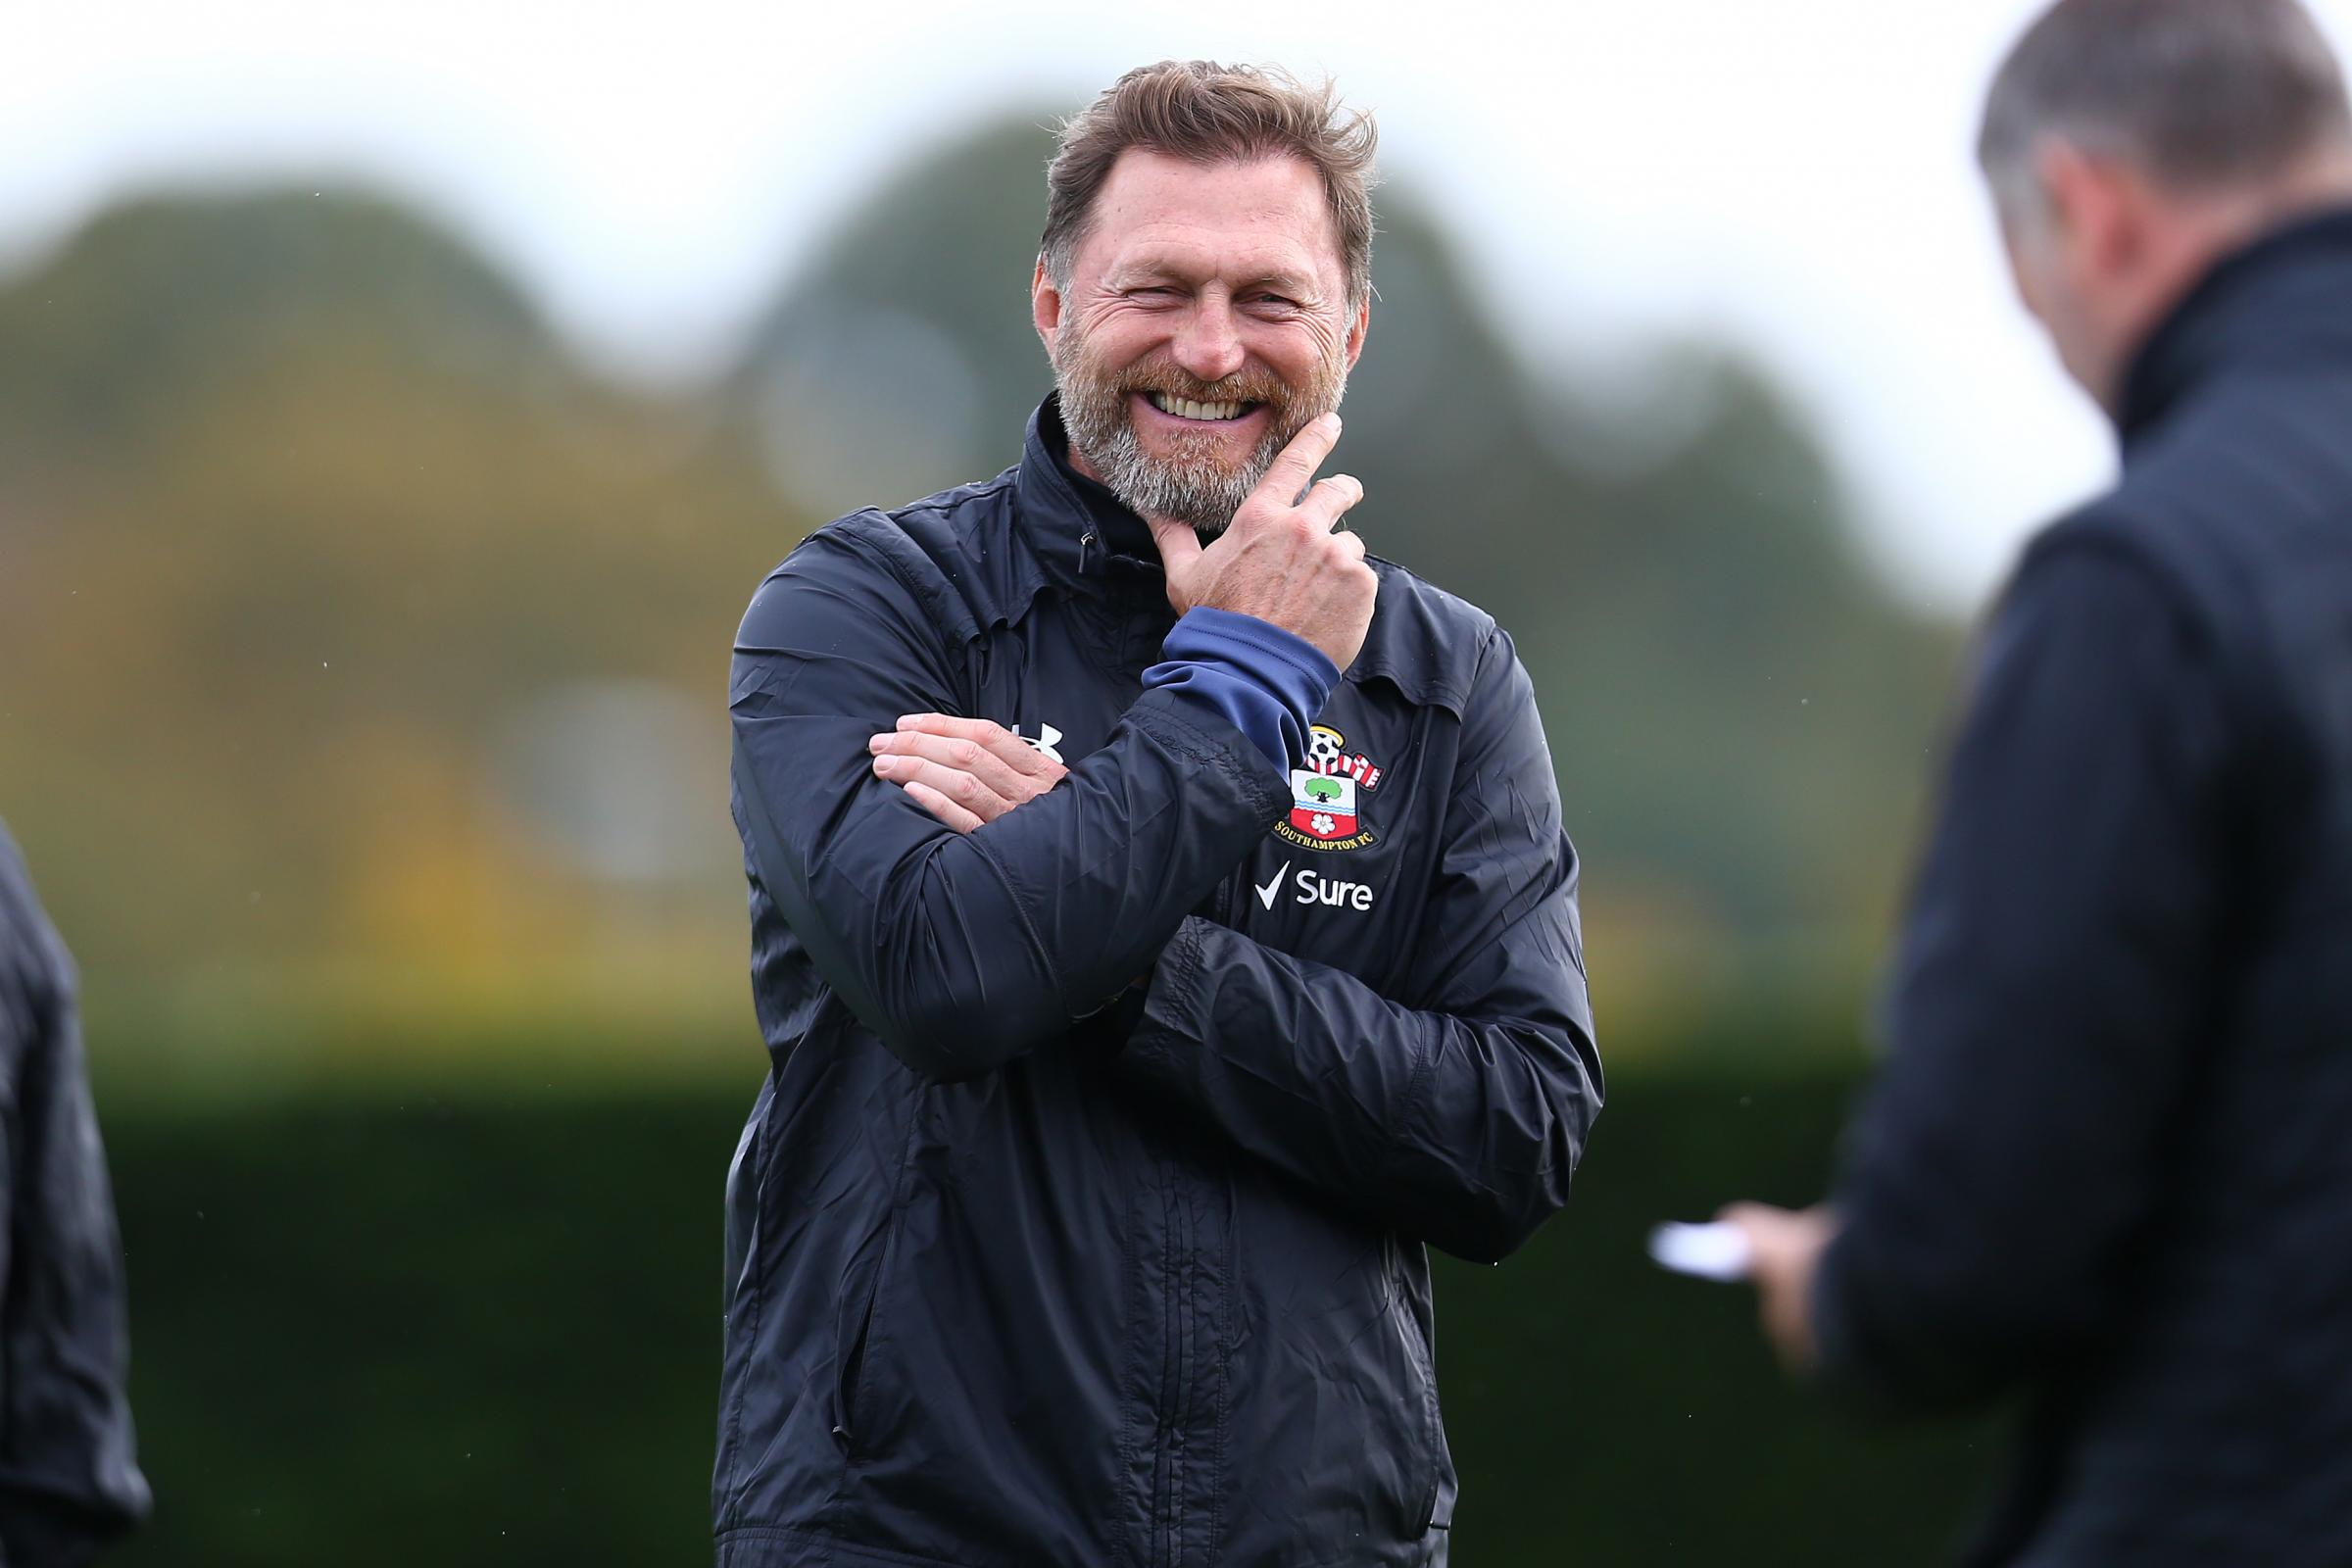 How to win a chance for a video call with Ralph Hasenhuttl